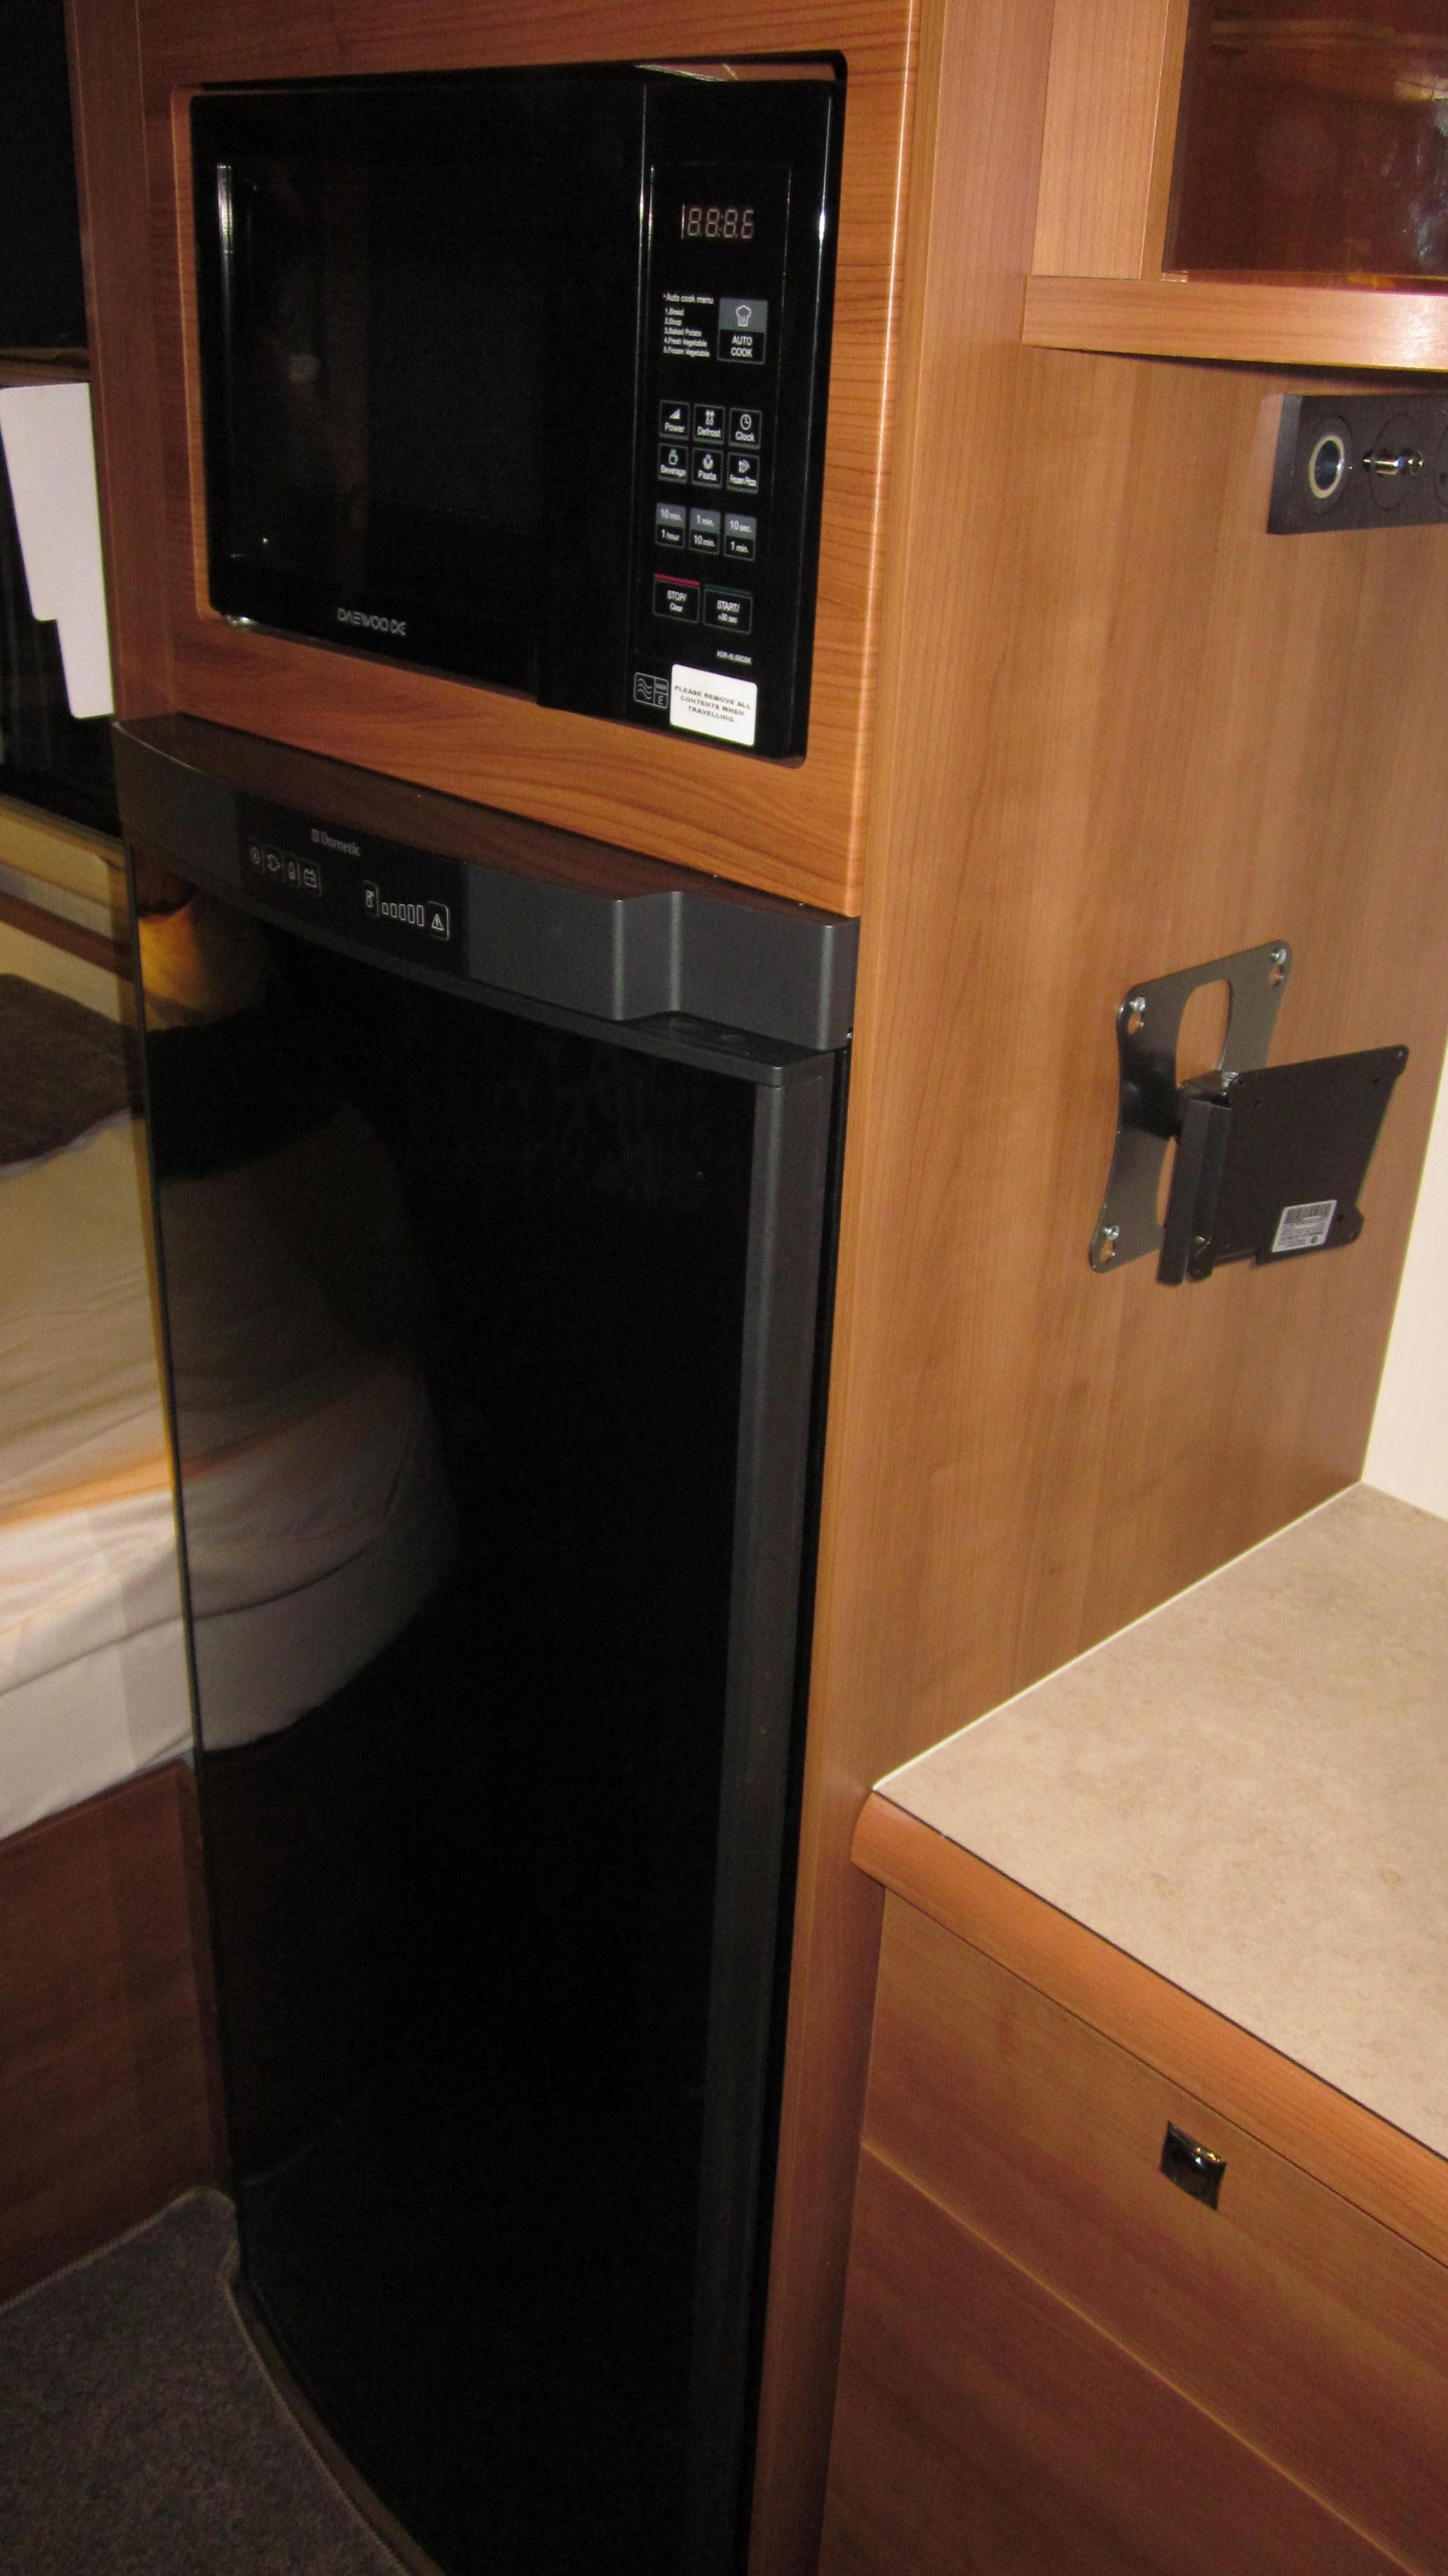 Full Size Fridge Freezer Above Is Microwave Oven To Side You Can See Tv Mountings And Small Cupboard Below